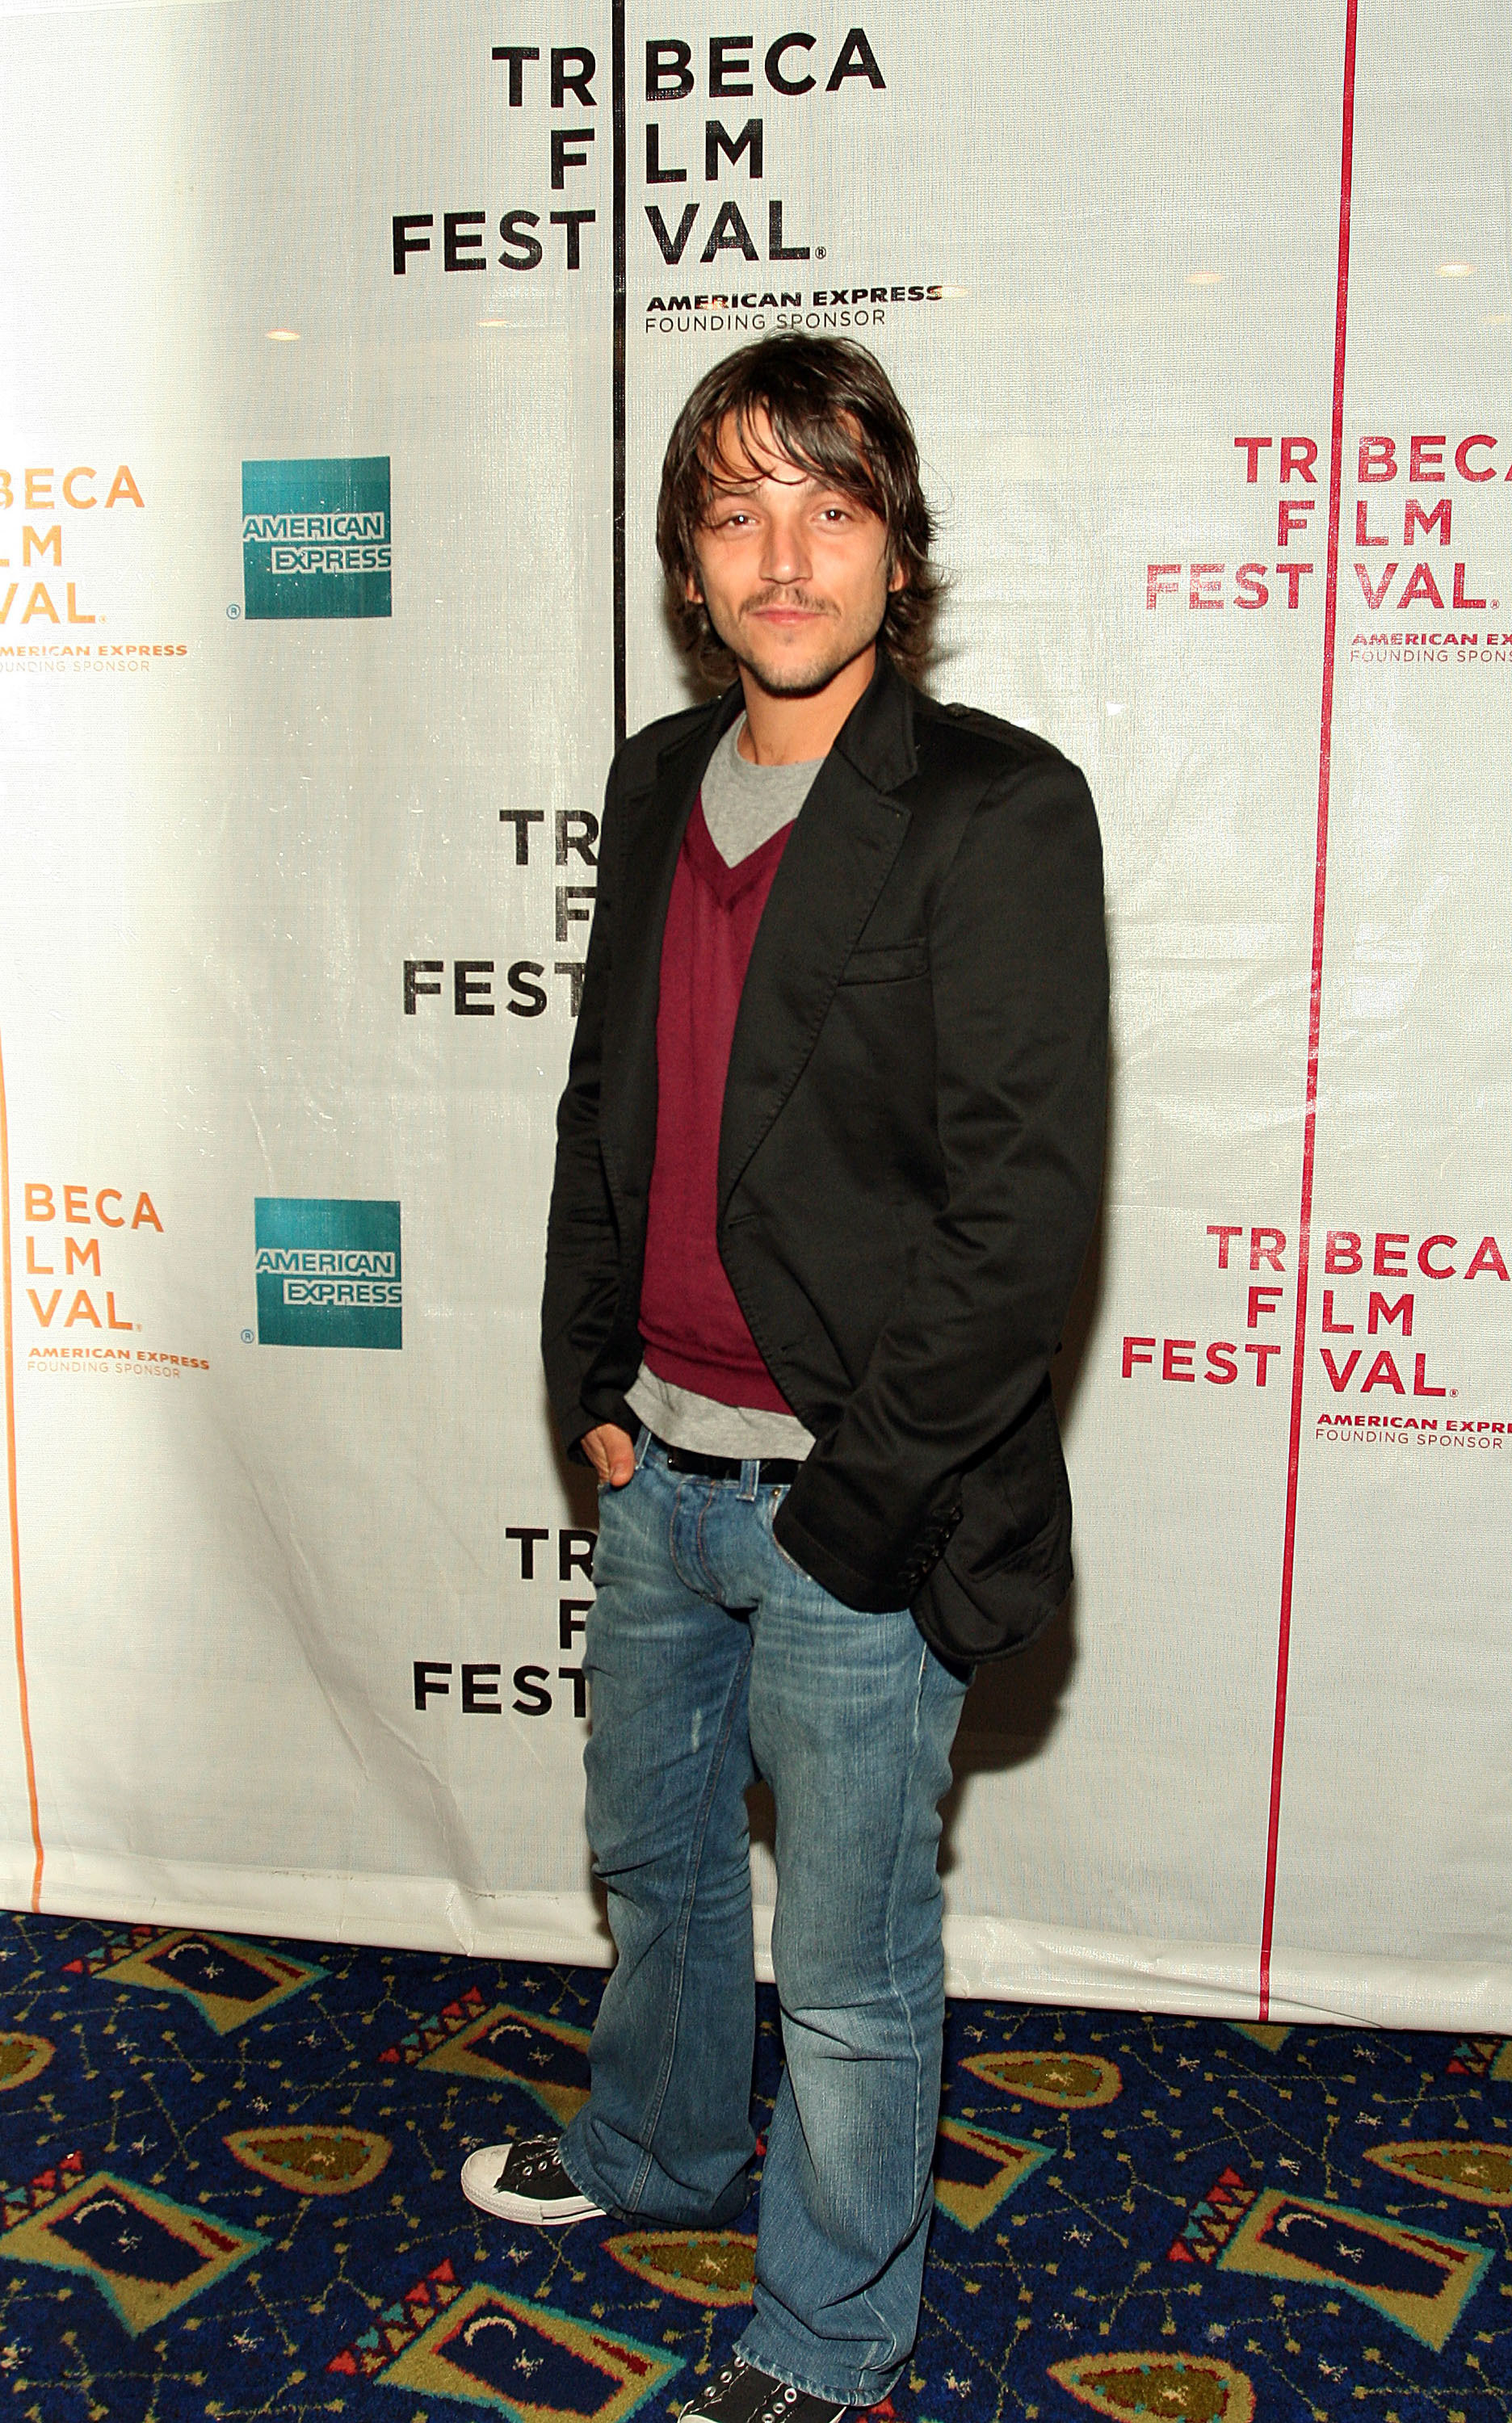 Diego Luna wearing bootcut jeans and black Converses.